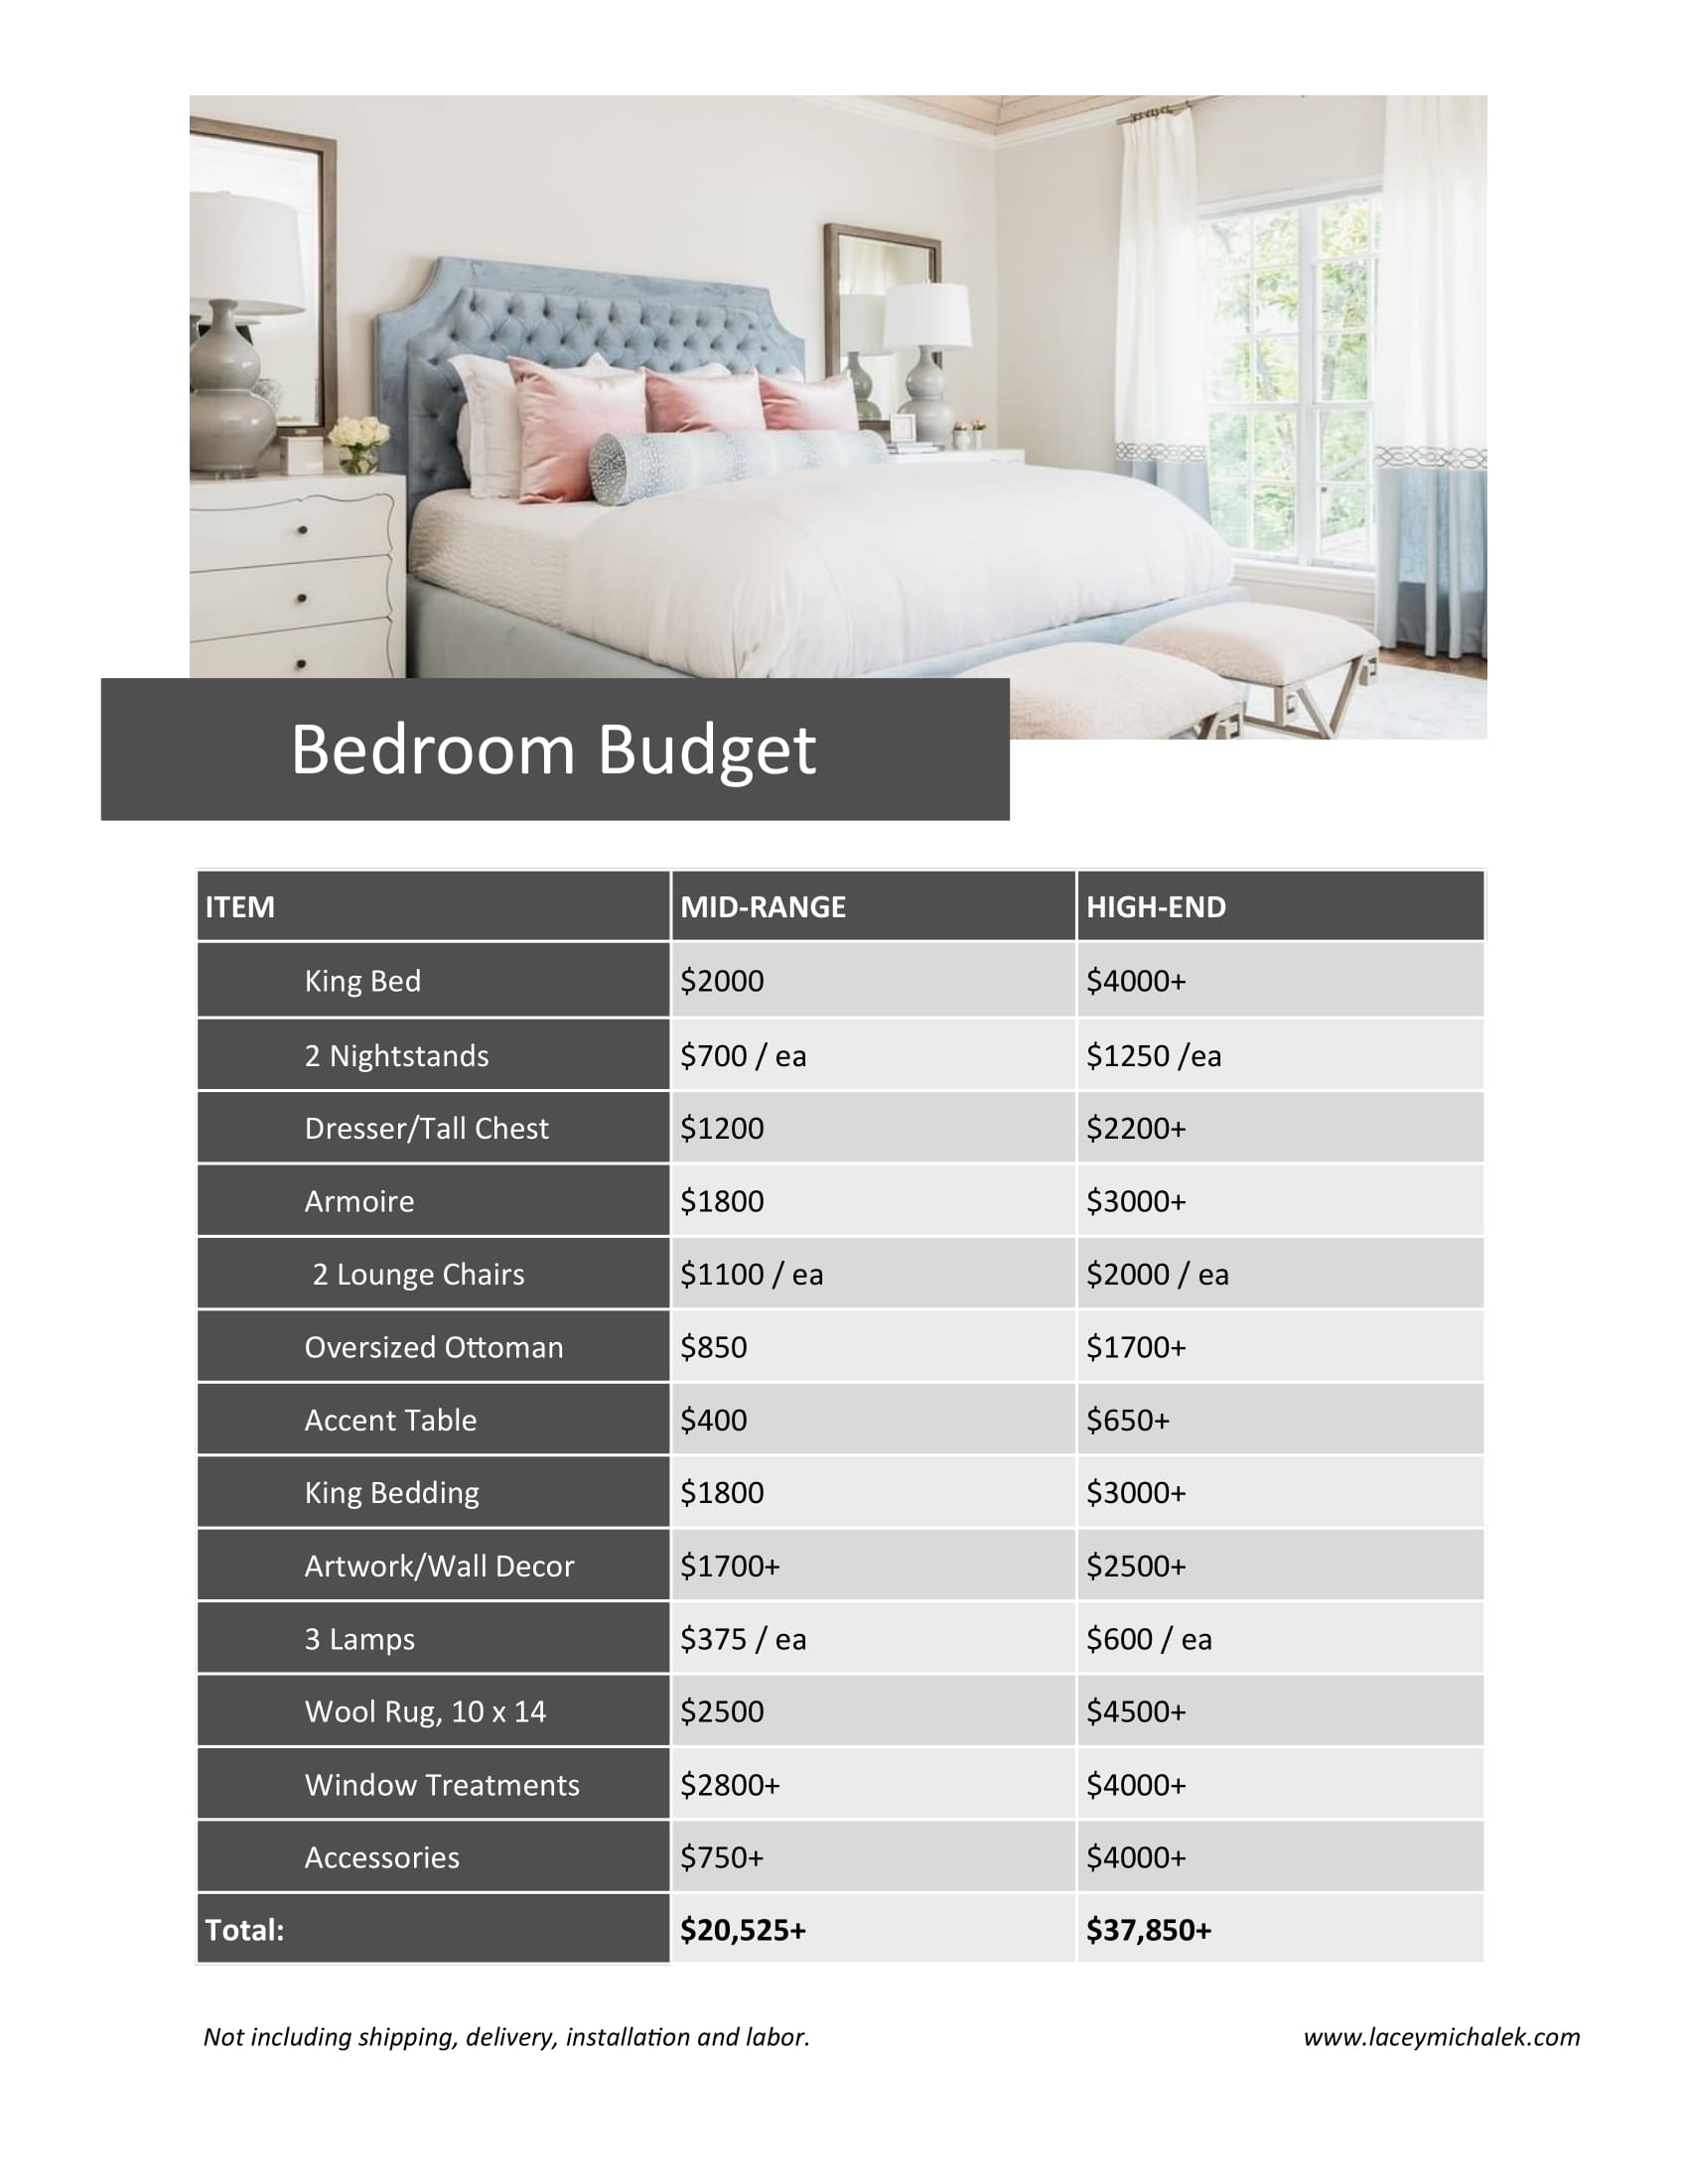 Cost to furnish bedroom budget breakdown